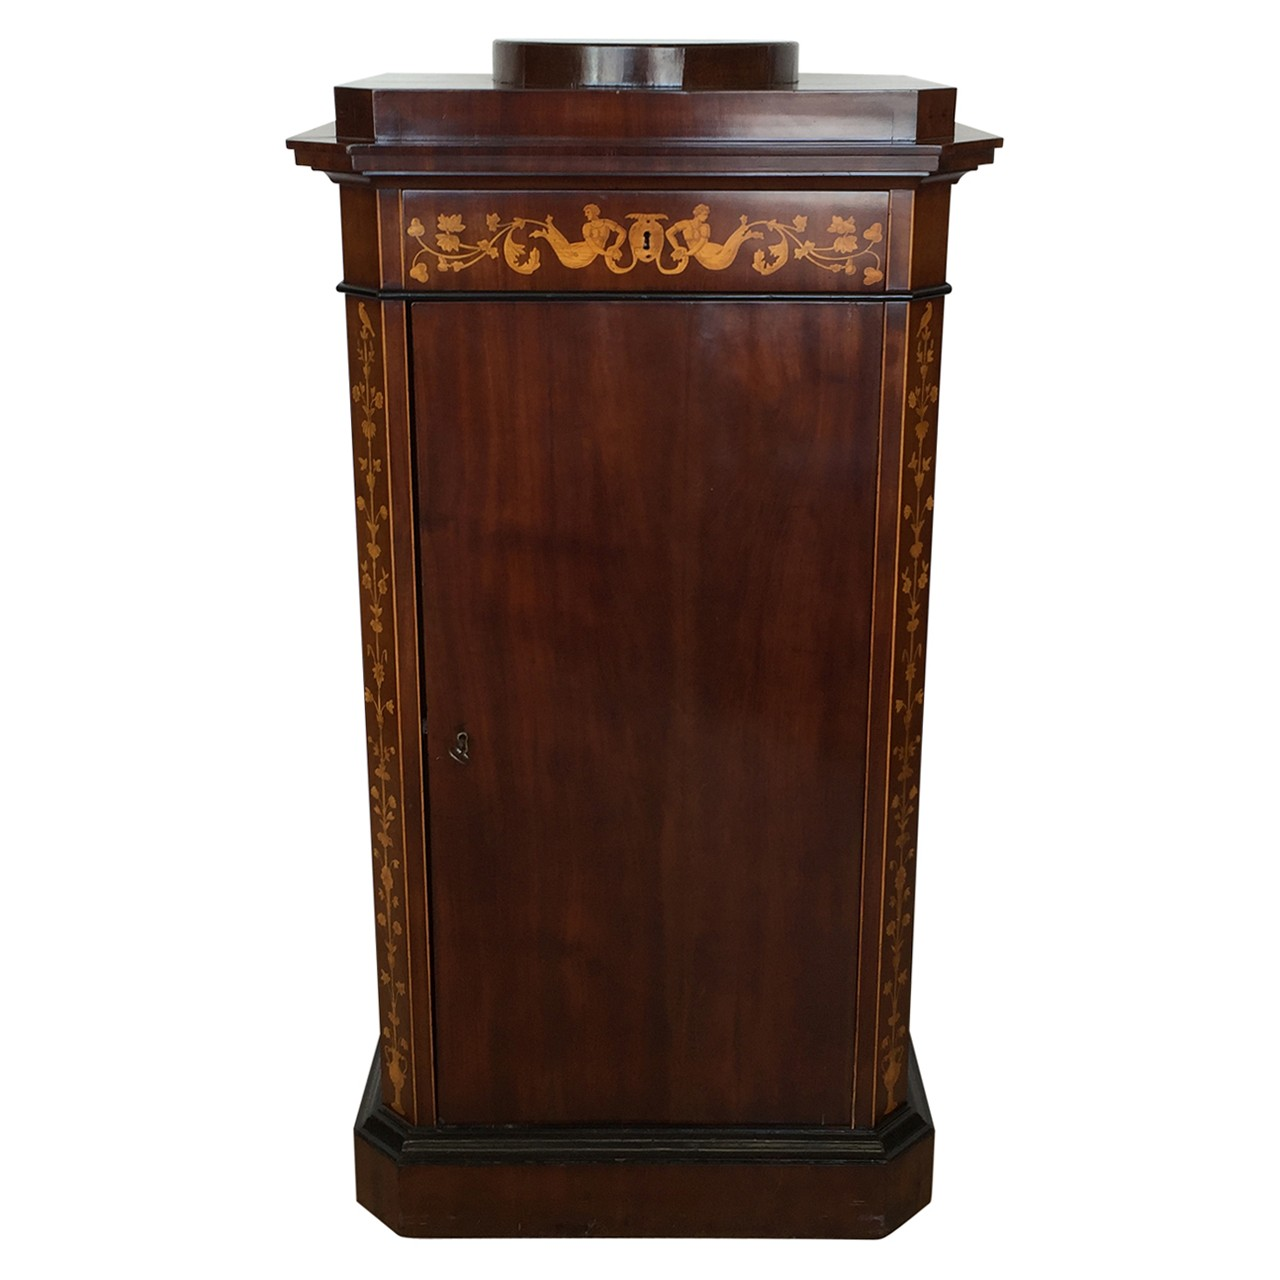 Continental mahogany cabinet with floral decorated inlay. Ca 1840.